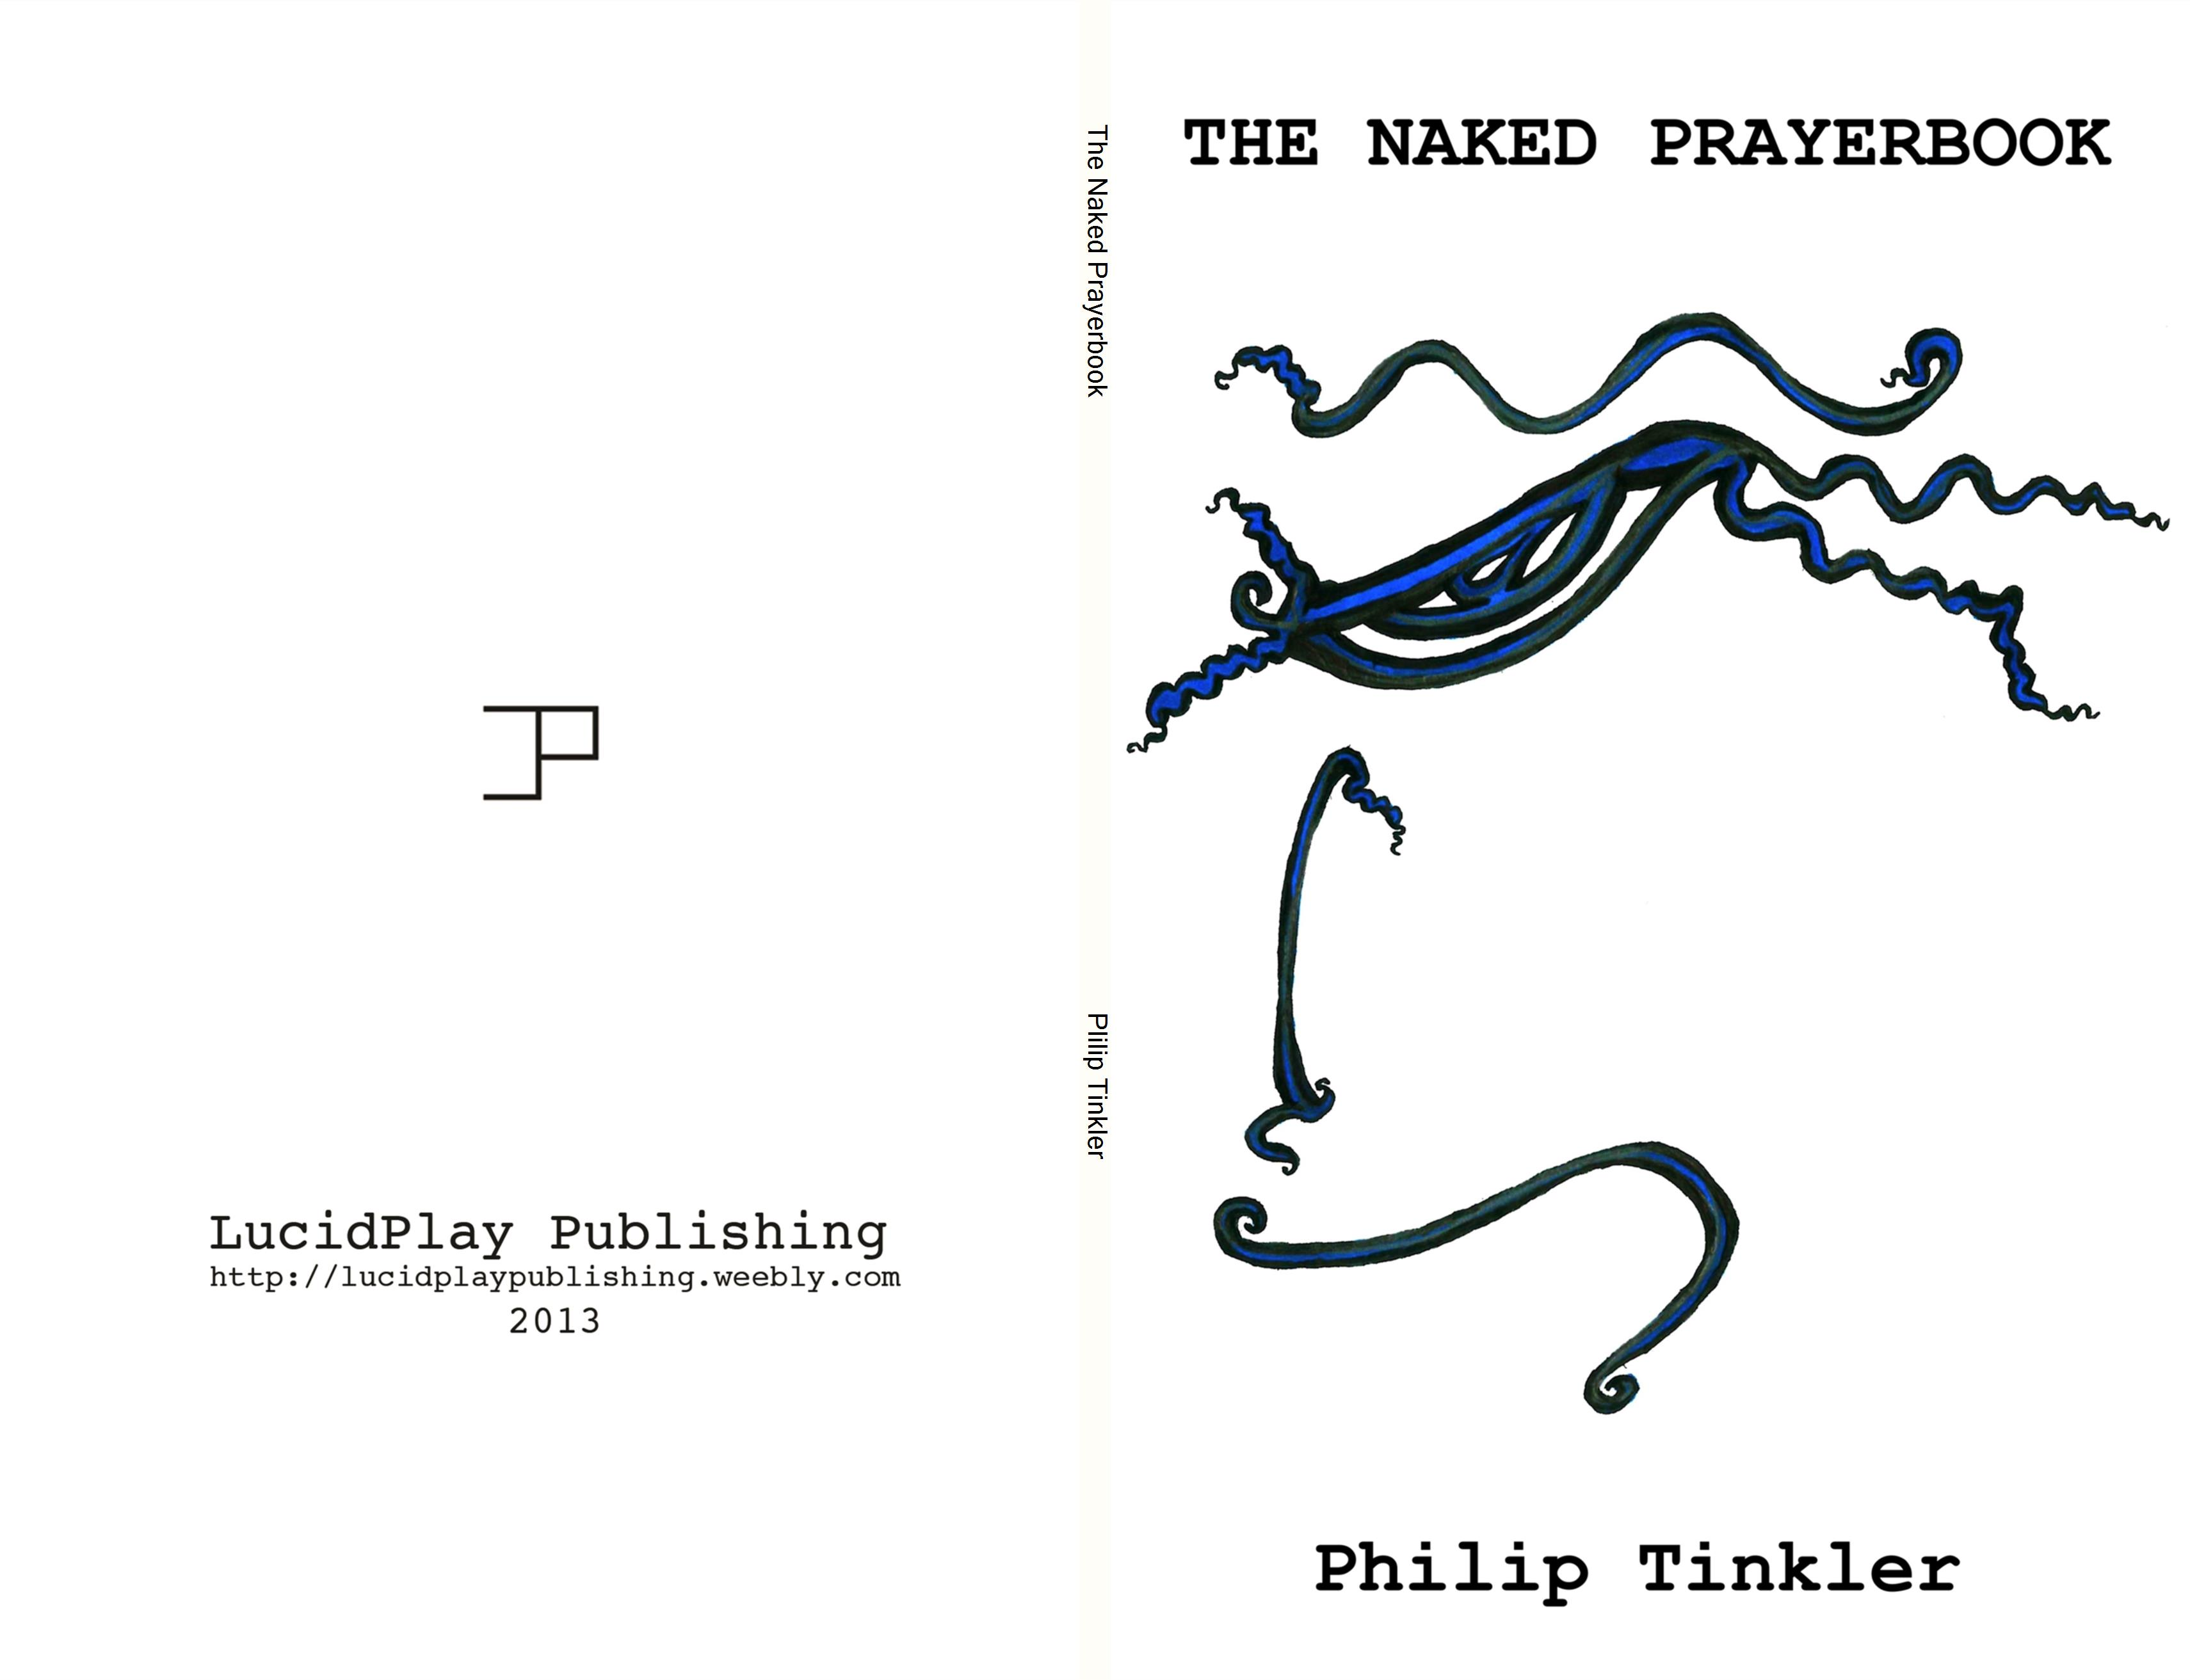 The Naked Prayerbook cover image